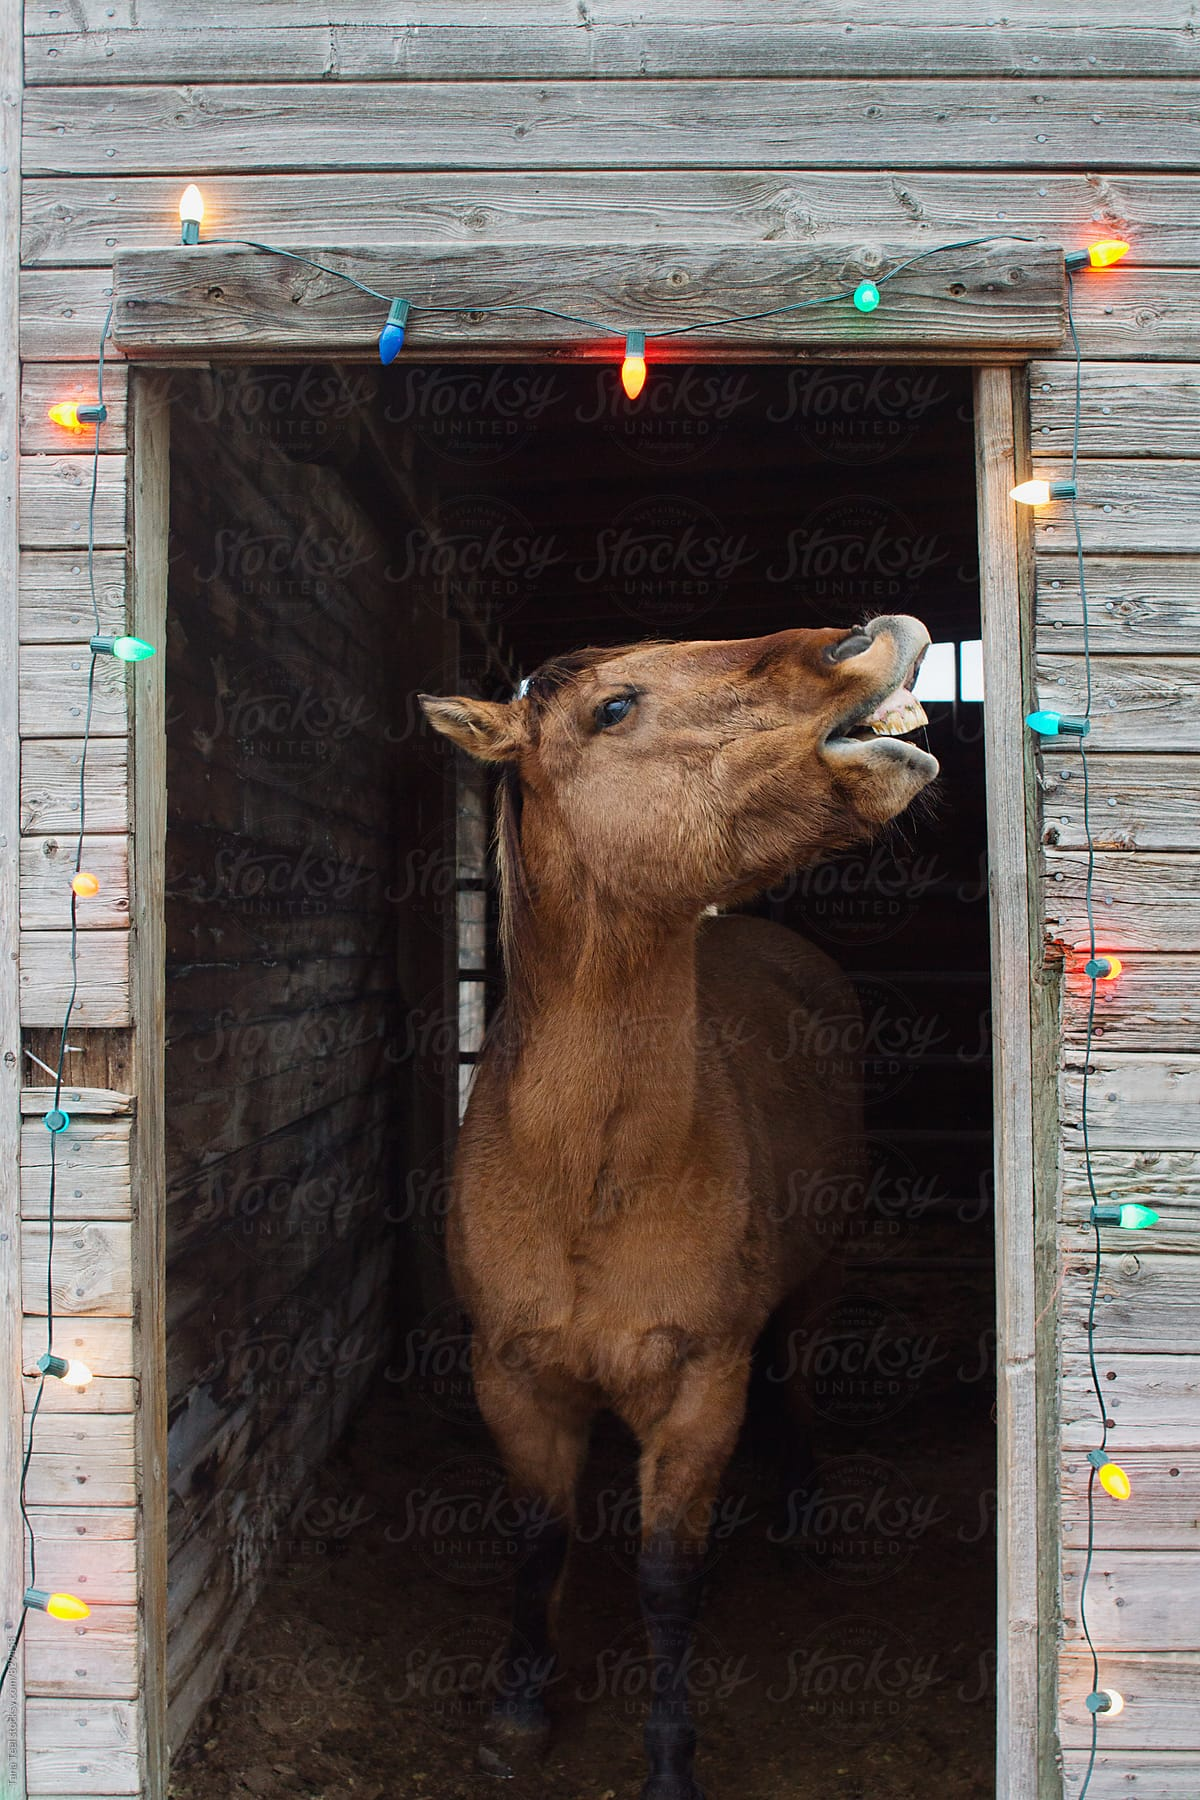 Horse Shows His Teeth While Standing In Decorated Barn Door